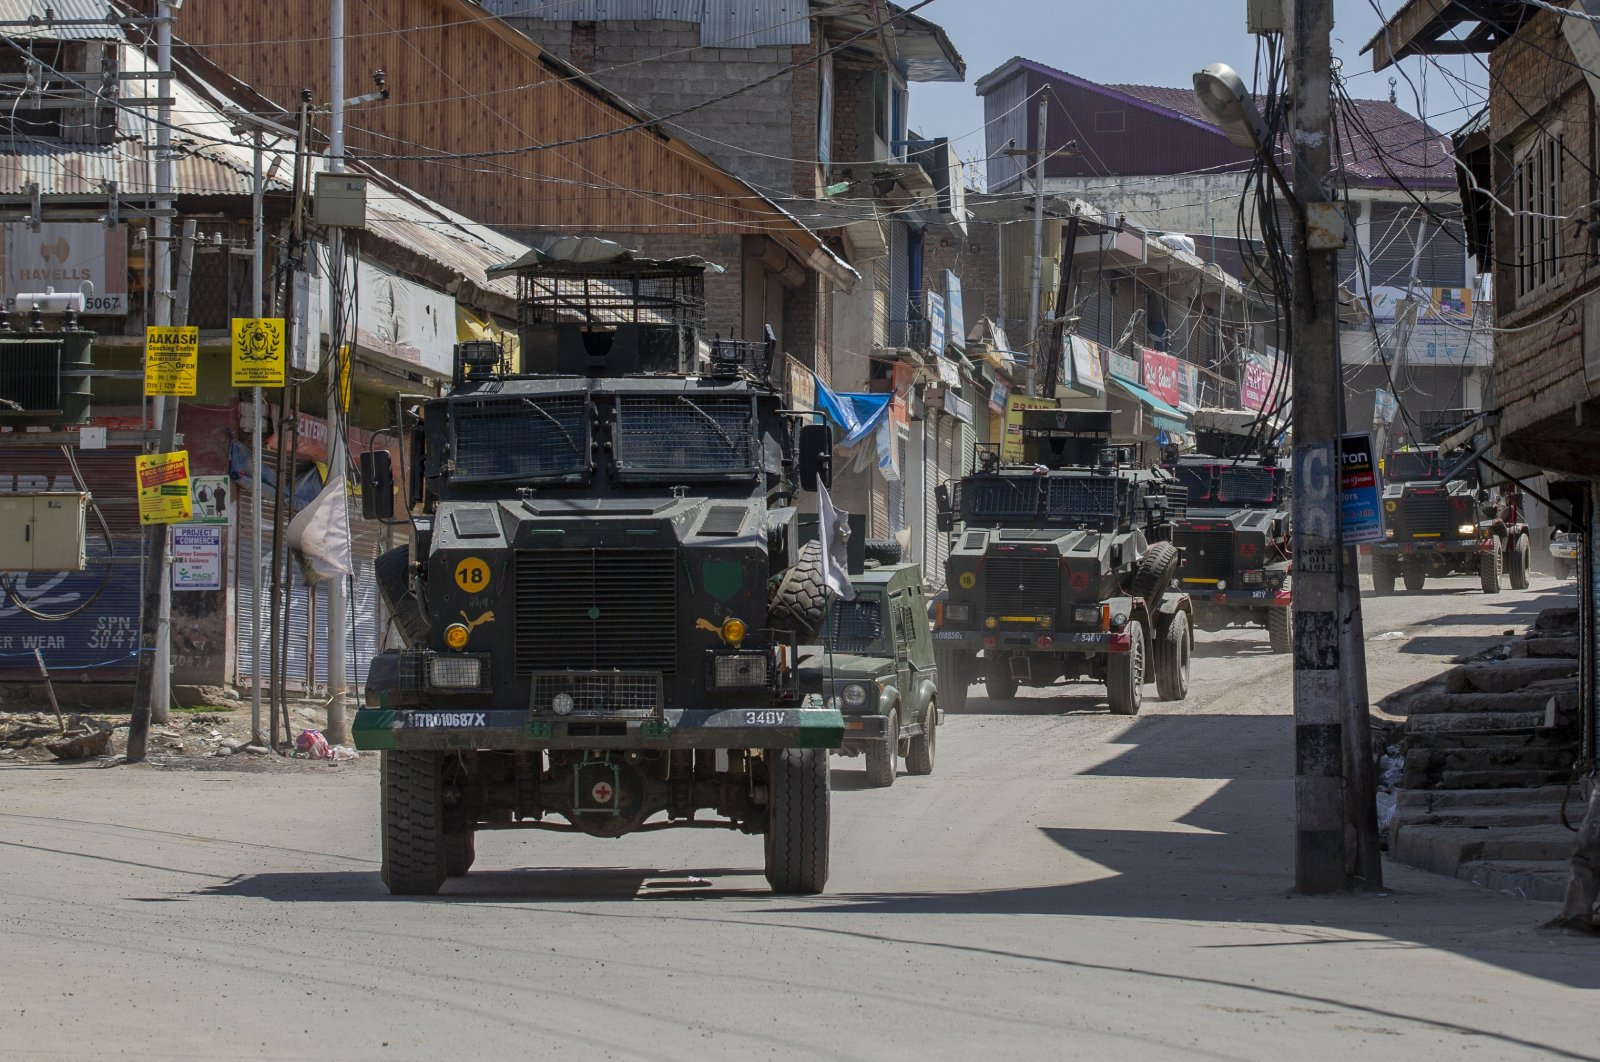 Indian army vehicles leave after a gunbattle in Shopian, south of Srinagar, Indian controlled Kashmir, April 9, 2021. (AP Photo)